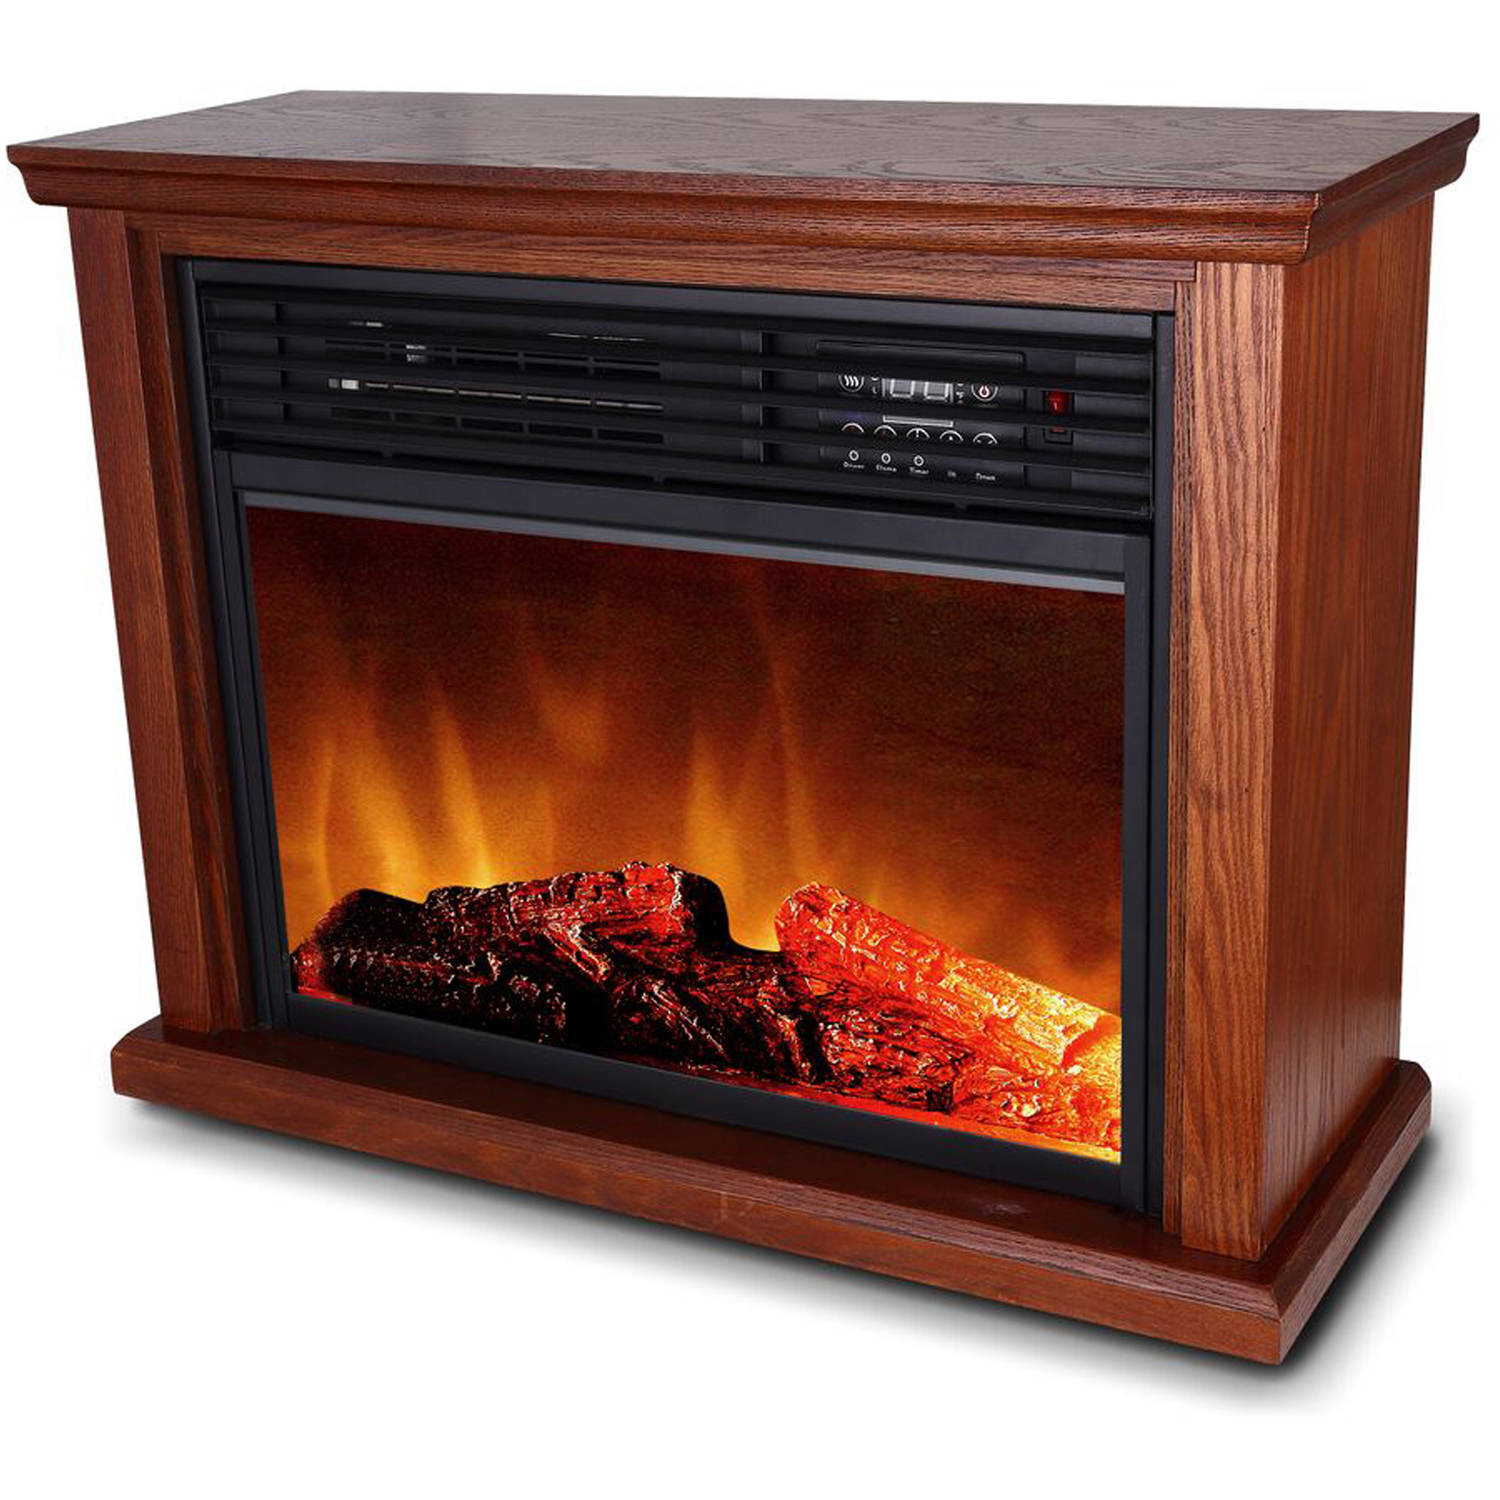 "ClassicFlame Infrared 23"" Fireplace Insert"